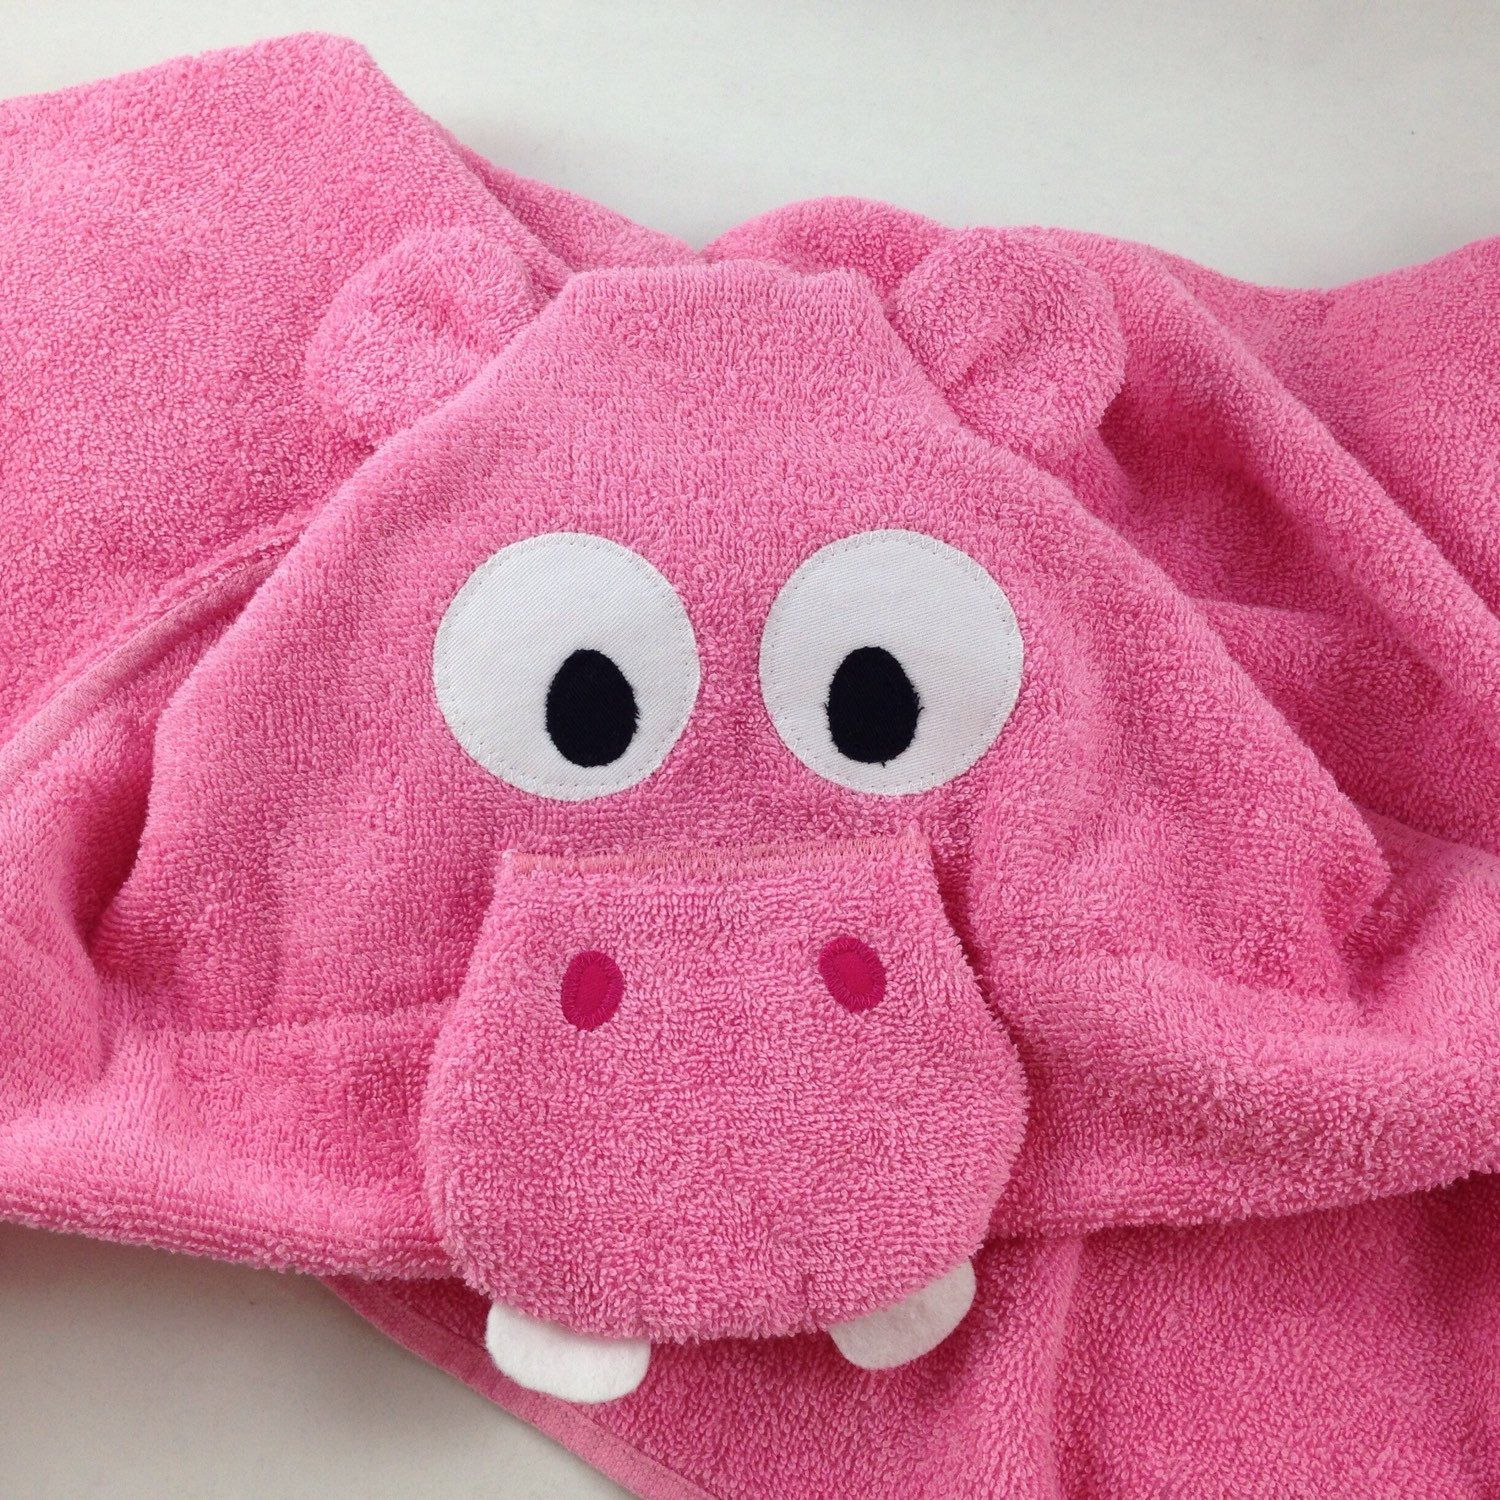 The newest addition to our hooded towel collection. An adorable hippo!